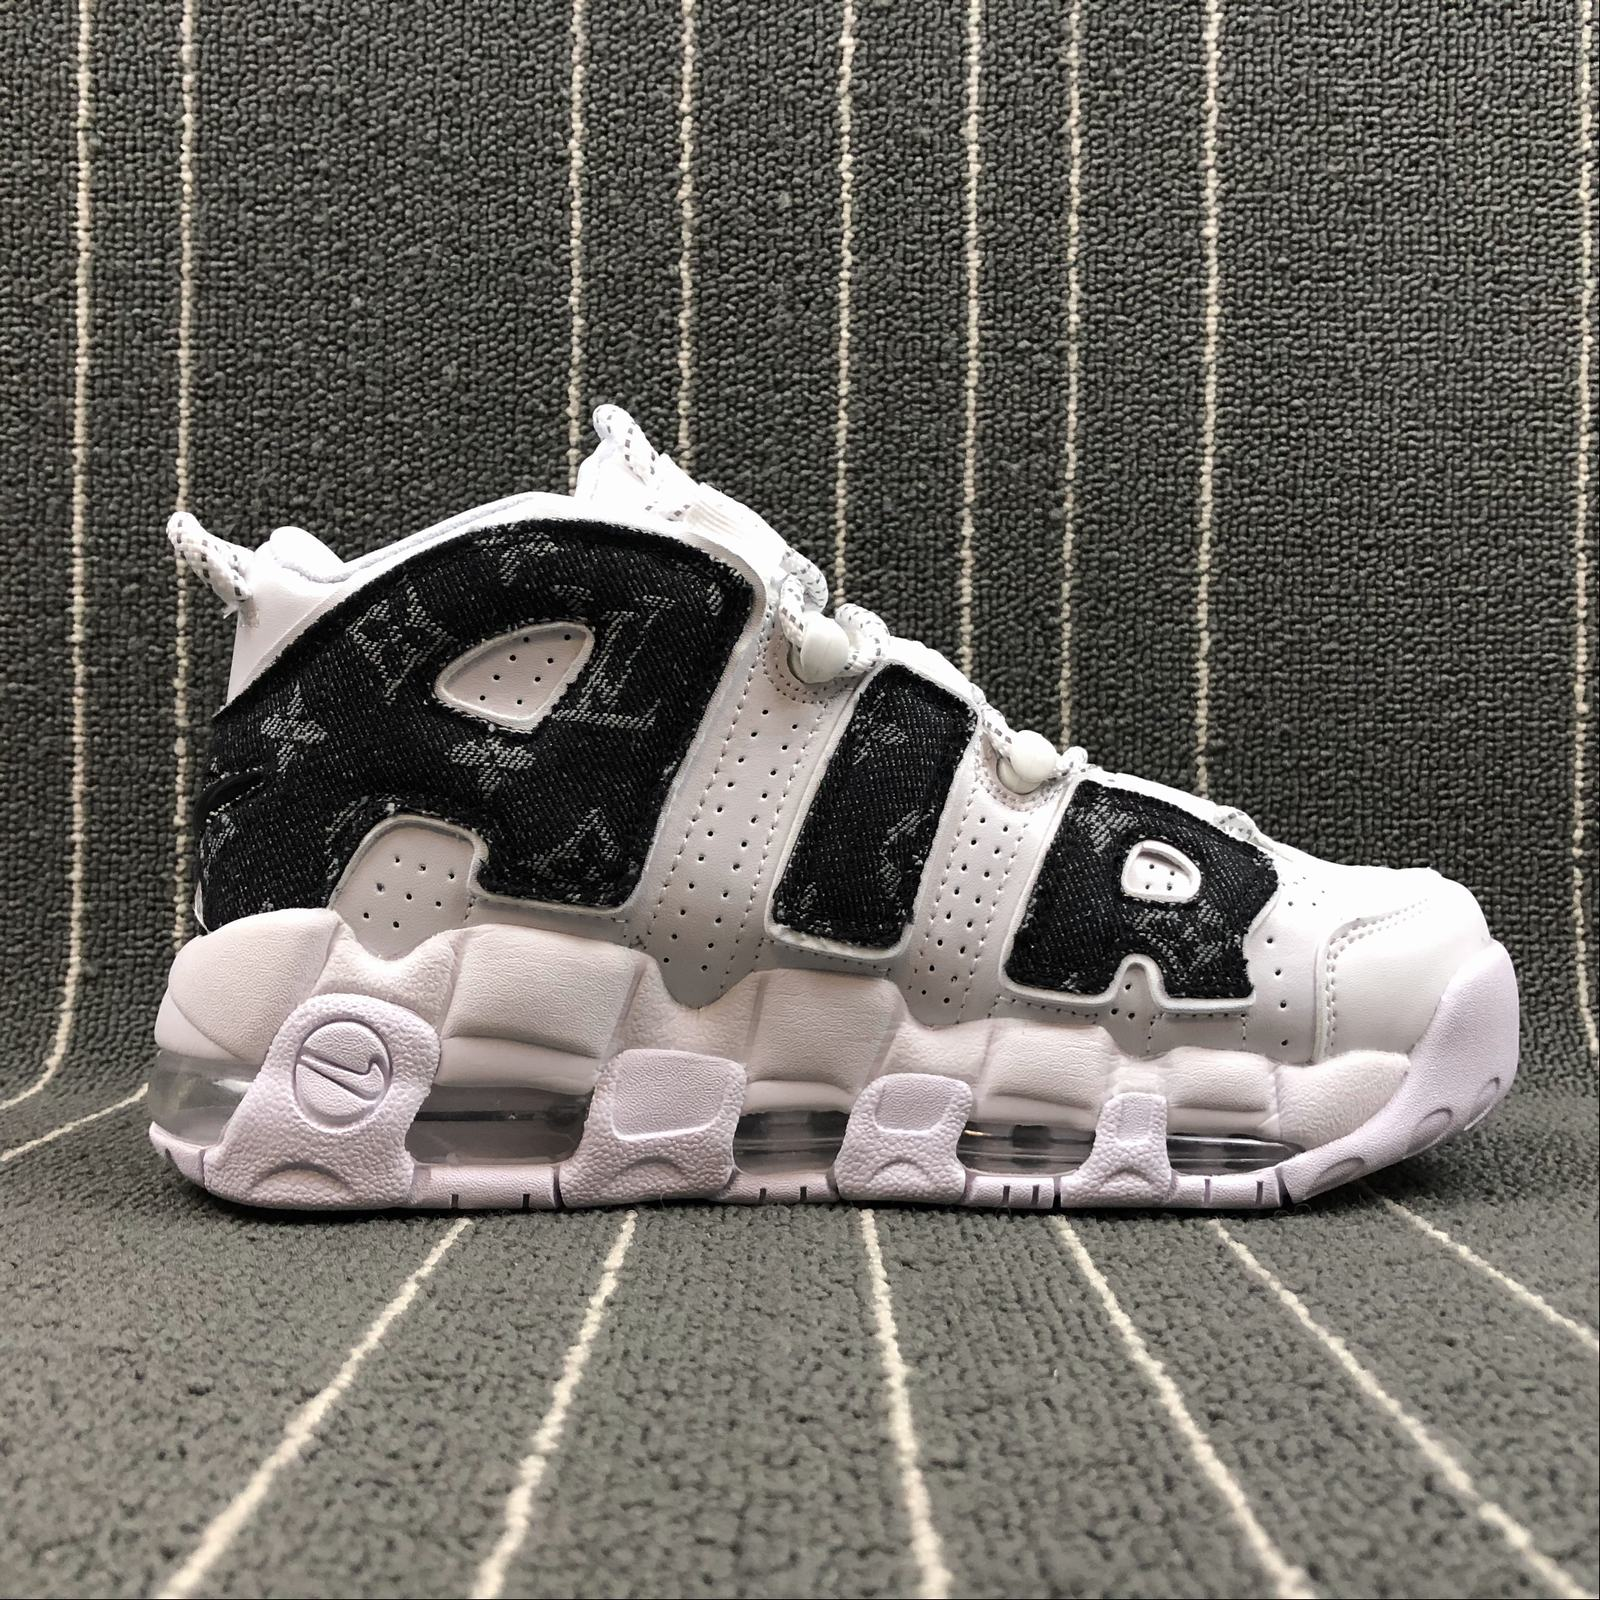 Женские кроссовки Nike Air More Uptempo 96 Women White,Black jeans - фото №2